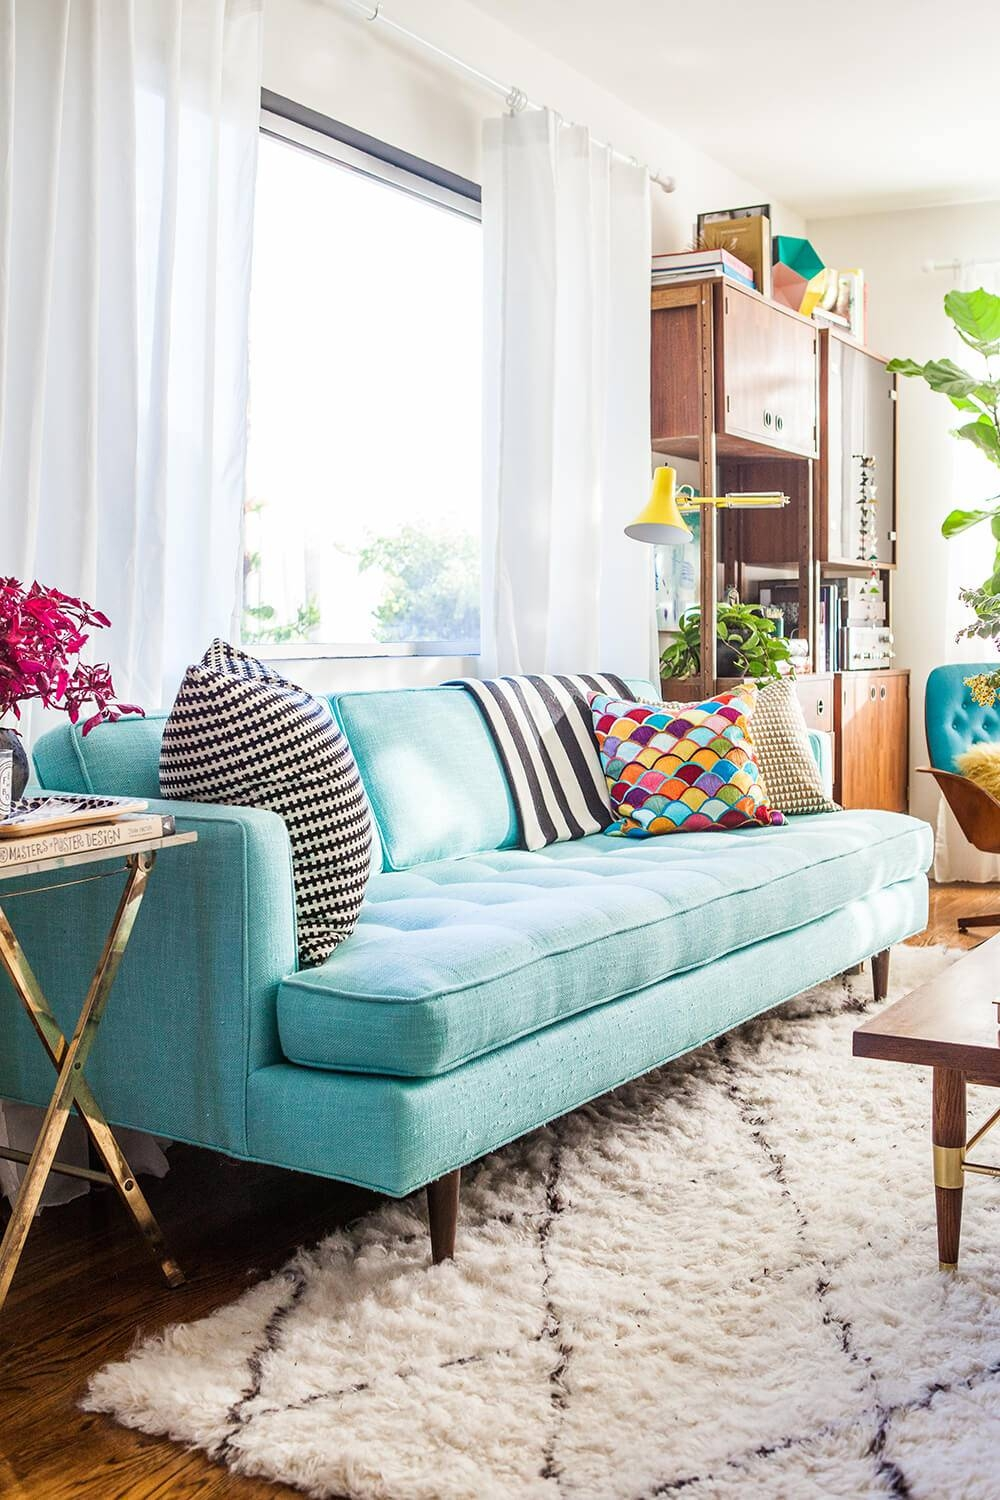 84 Affordable Amazing Sofas Under $1000 - Emily Henderson within Affordable Tufted Sofa (Image 2 of 30)